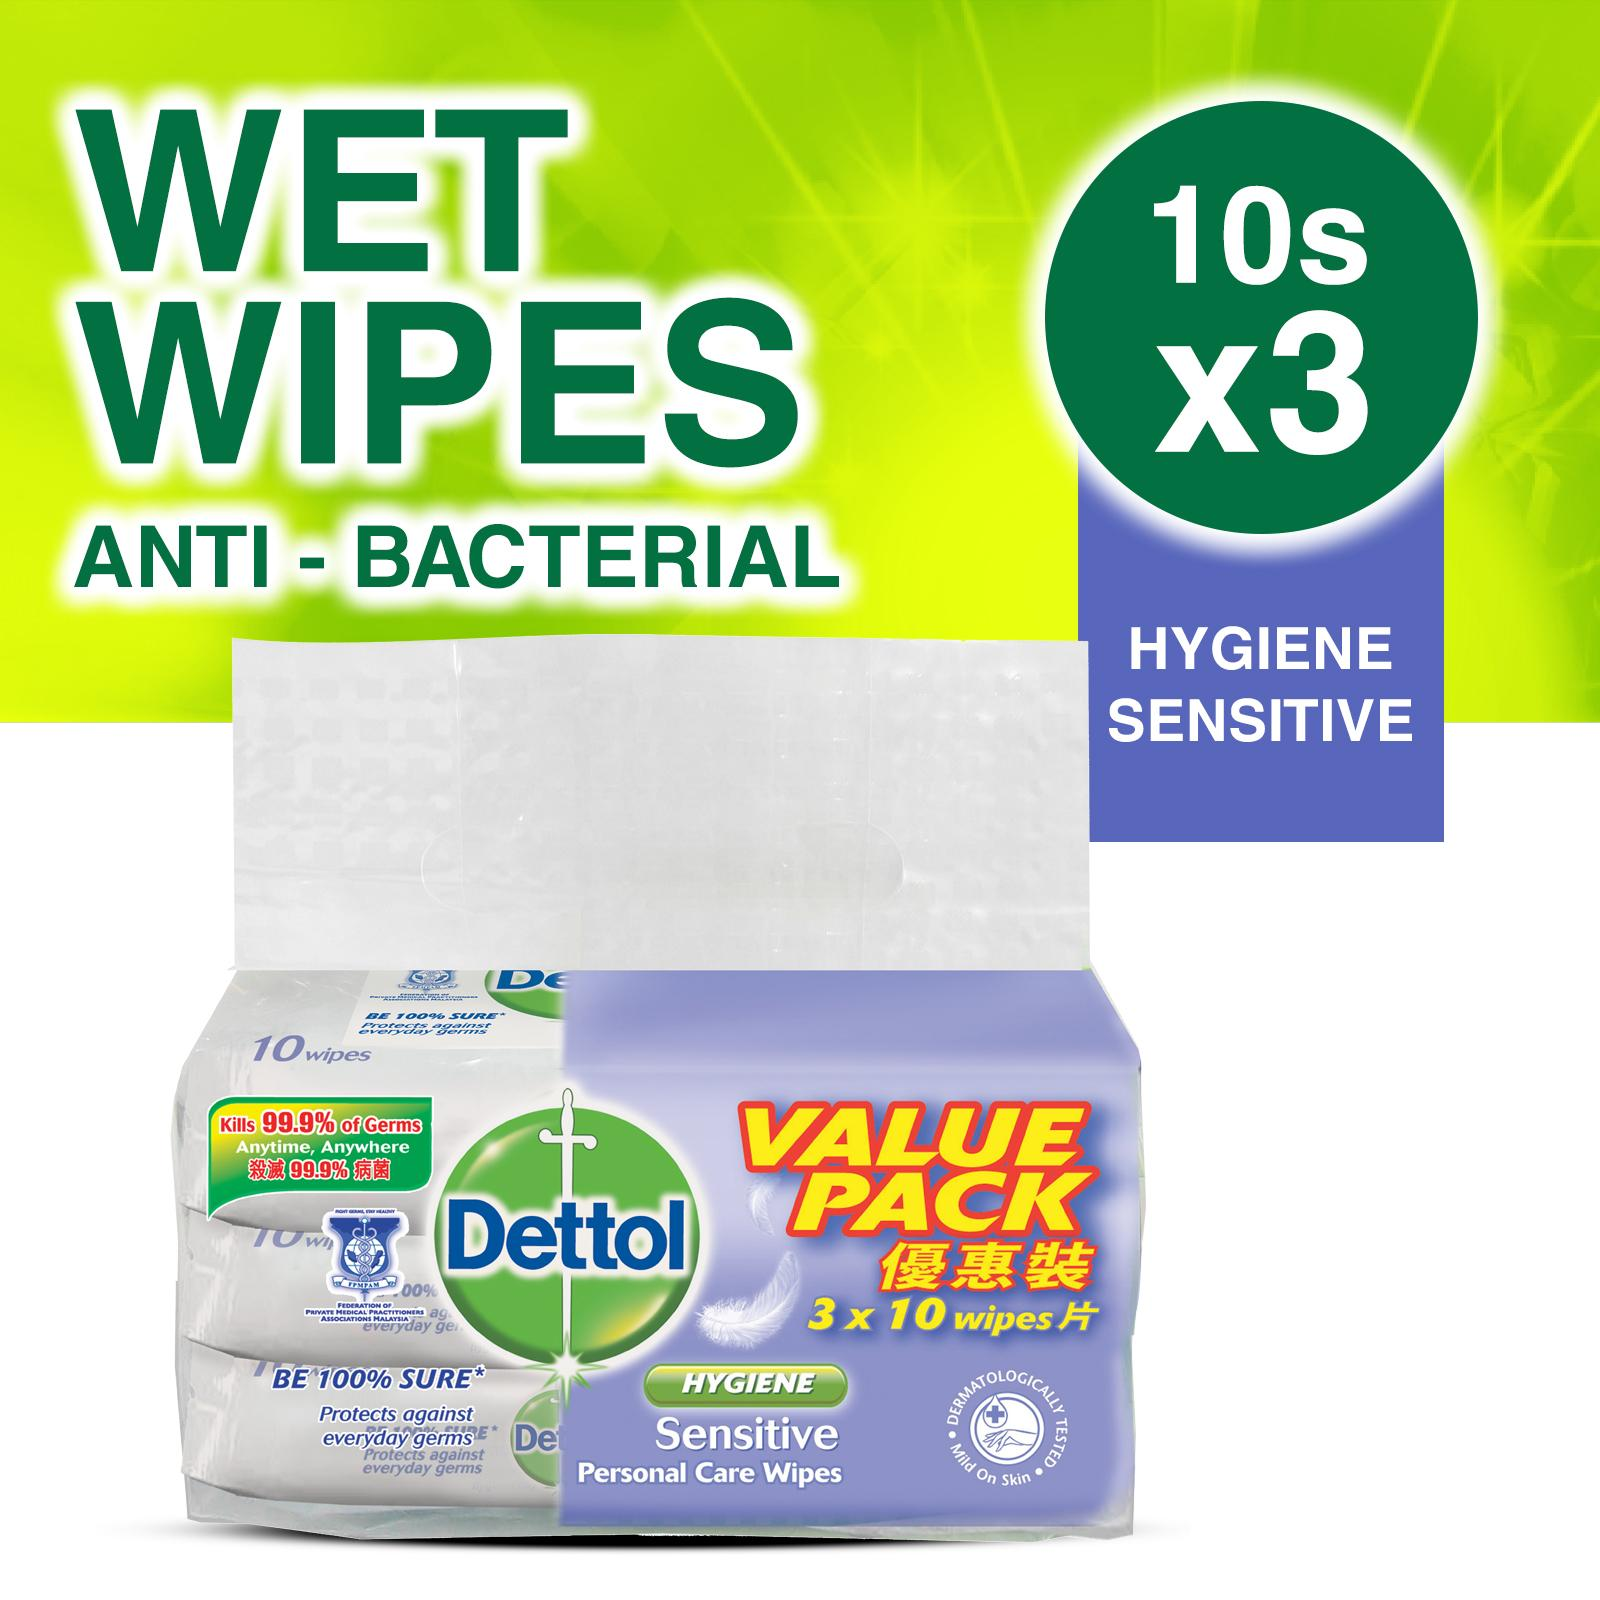 Dettol Anti Bacterial Sensitive Wet Wipes 10s Value Pack By Dettol.